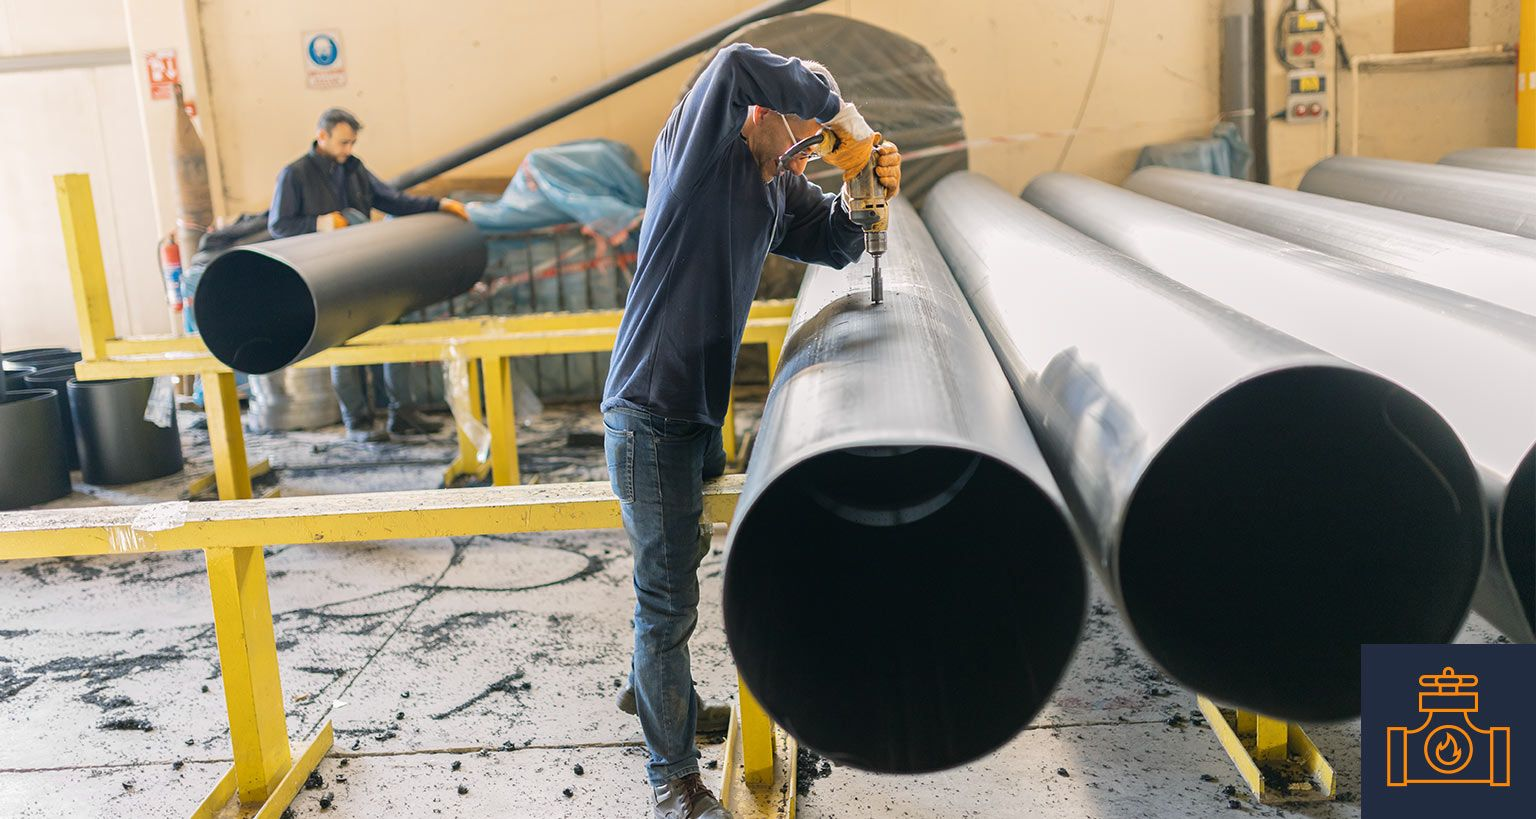 drilling into large steel pipes